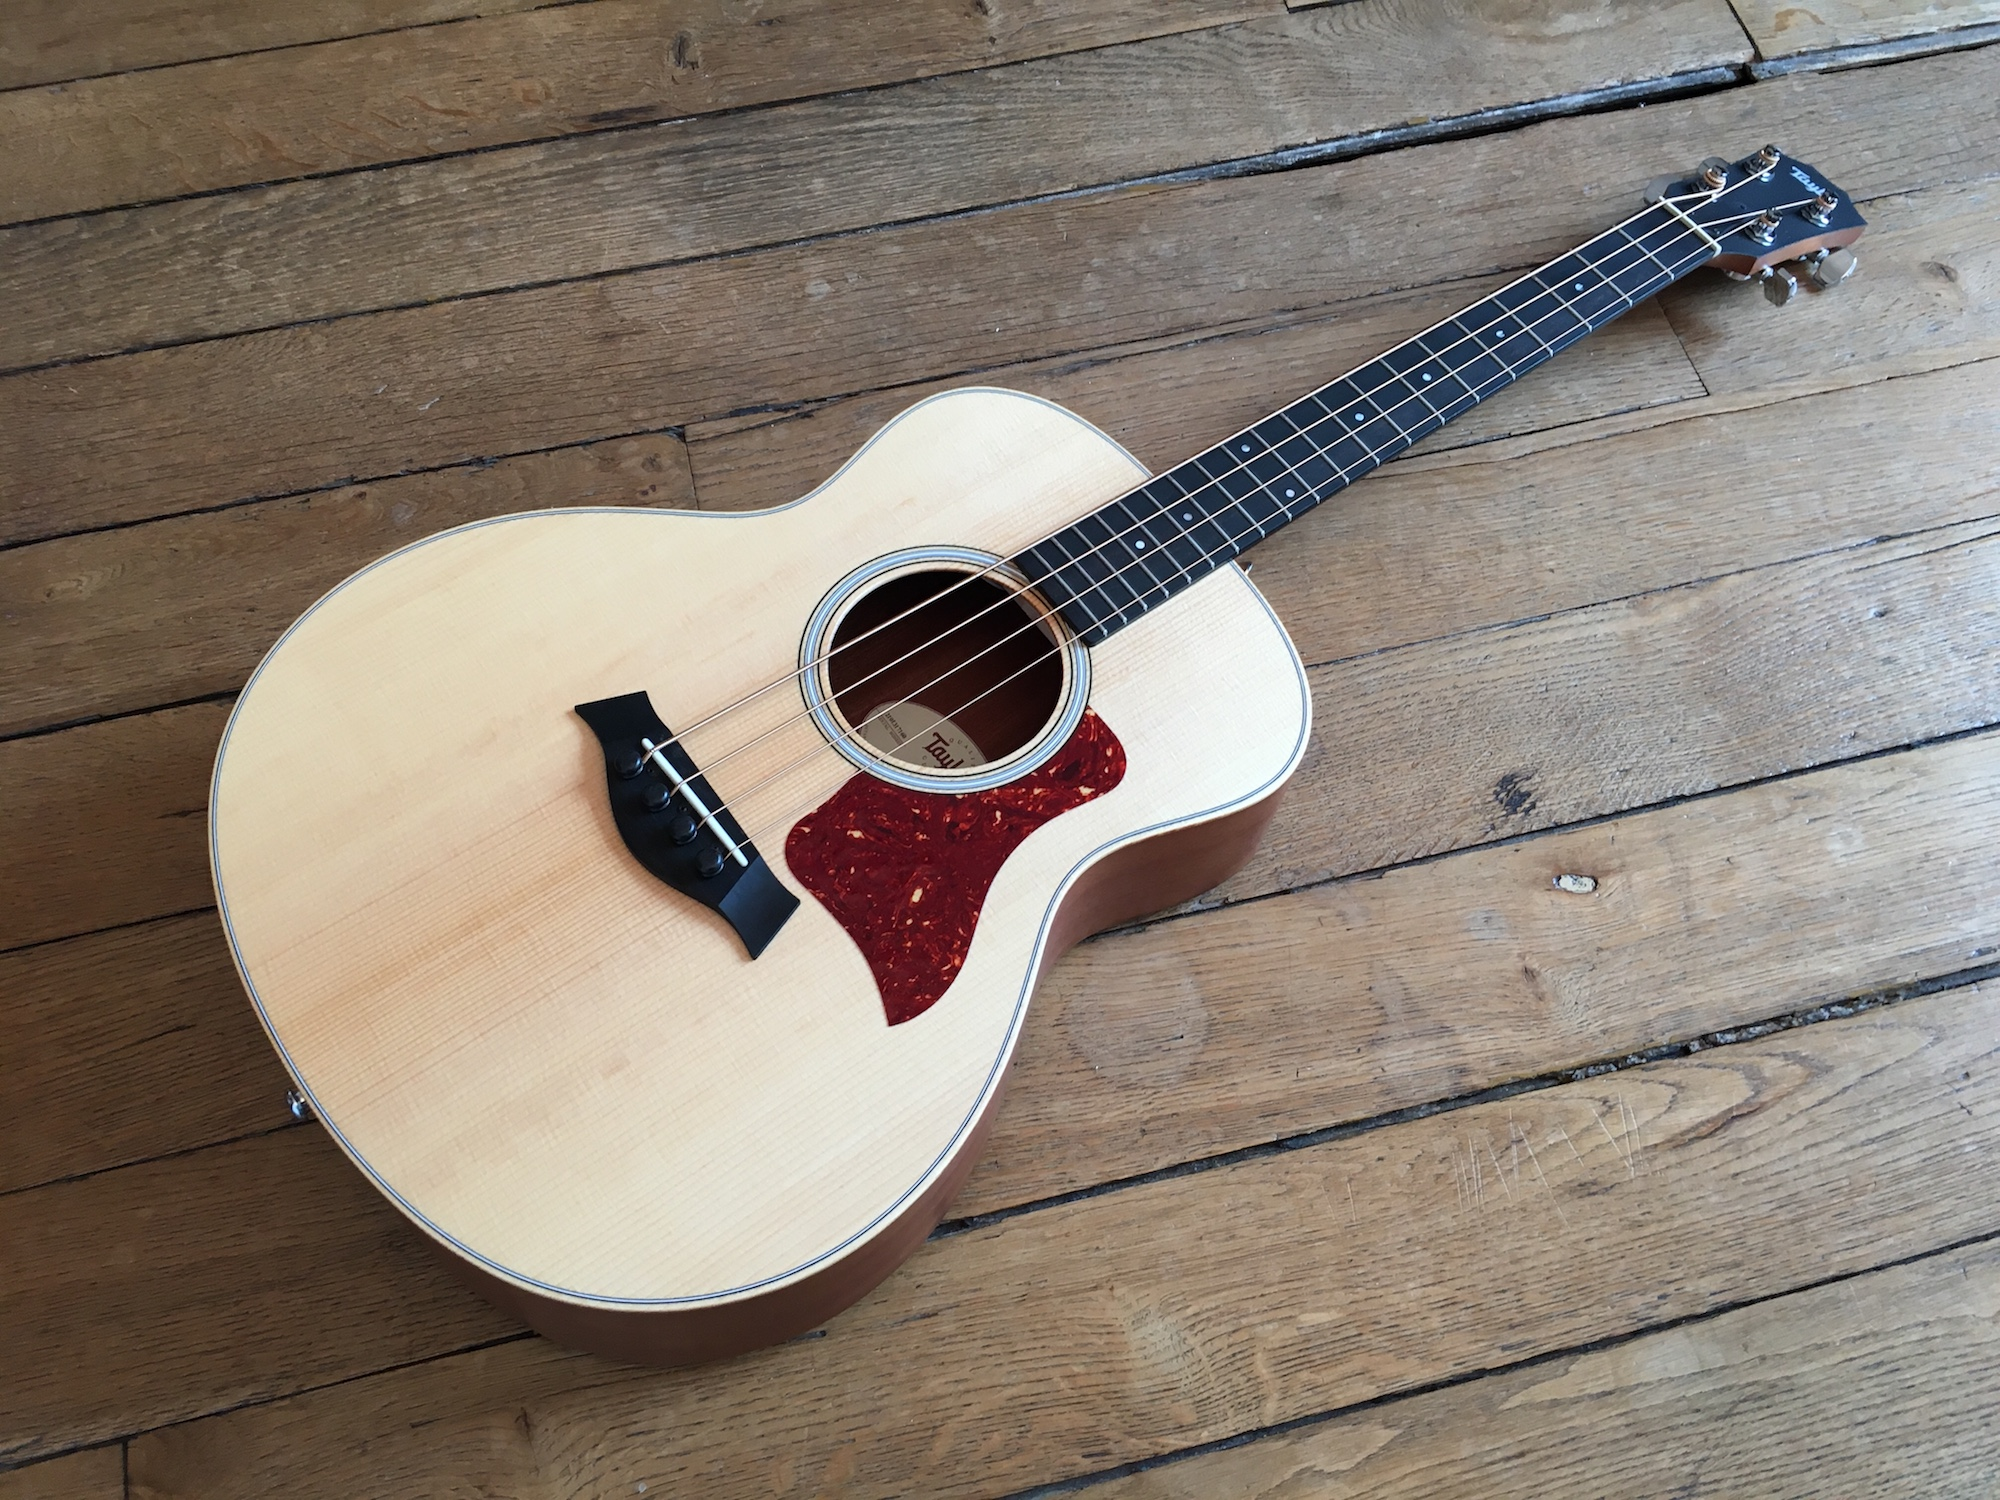 Guitar Review - GS Mini Bass @Taylor Guitars: small format, huge sound!